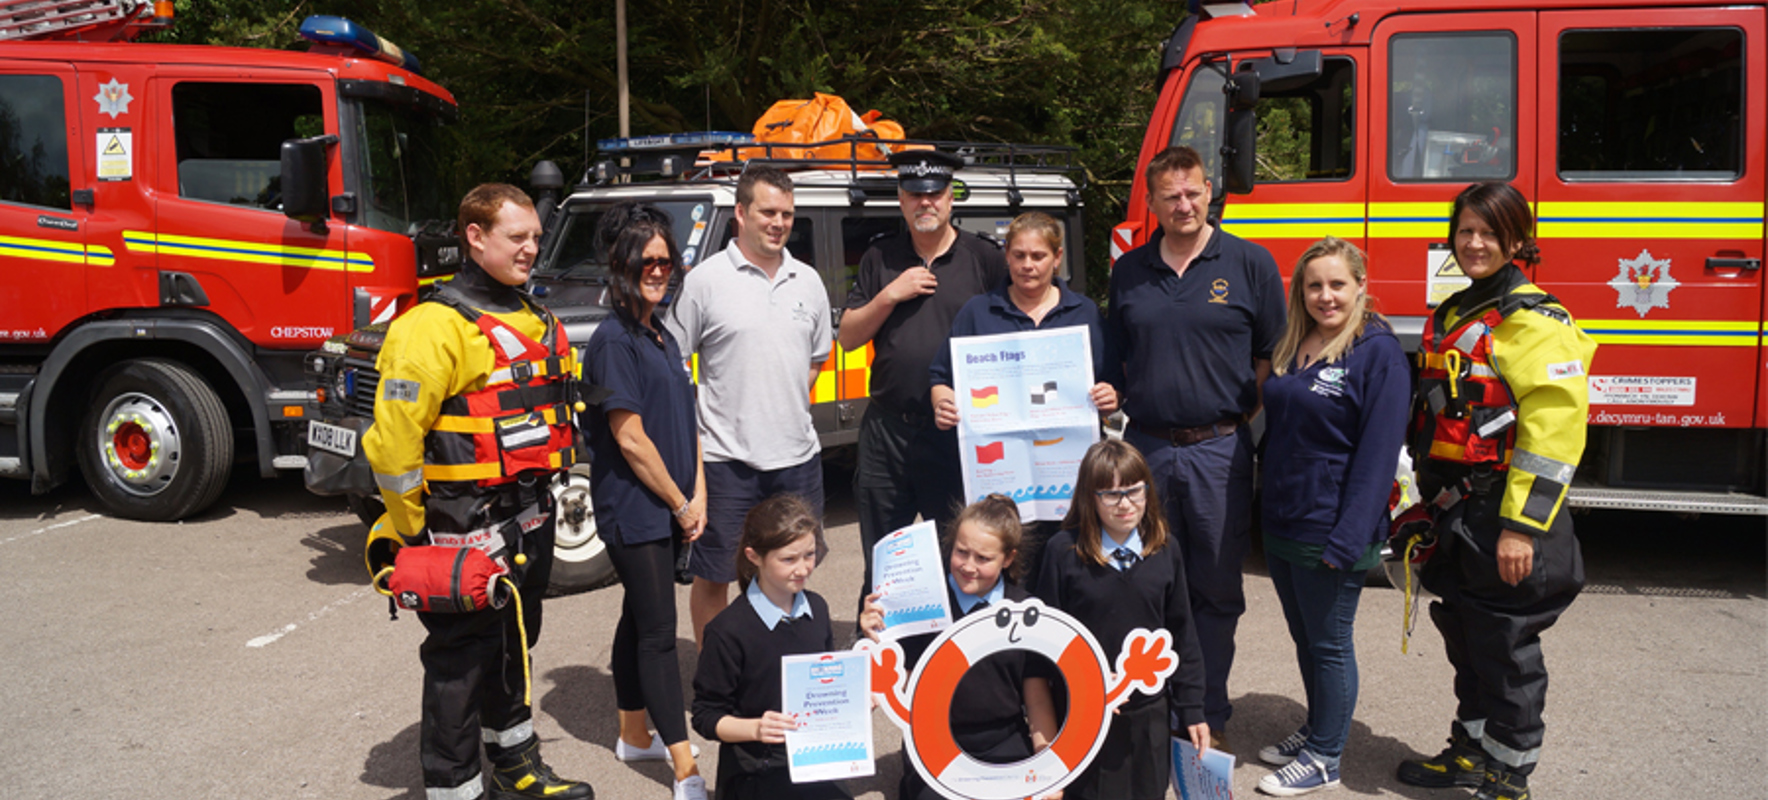 Twelve months, one seminar and one Drowning Prevention Week